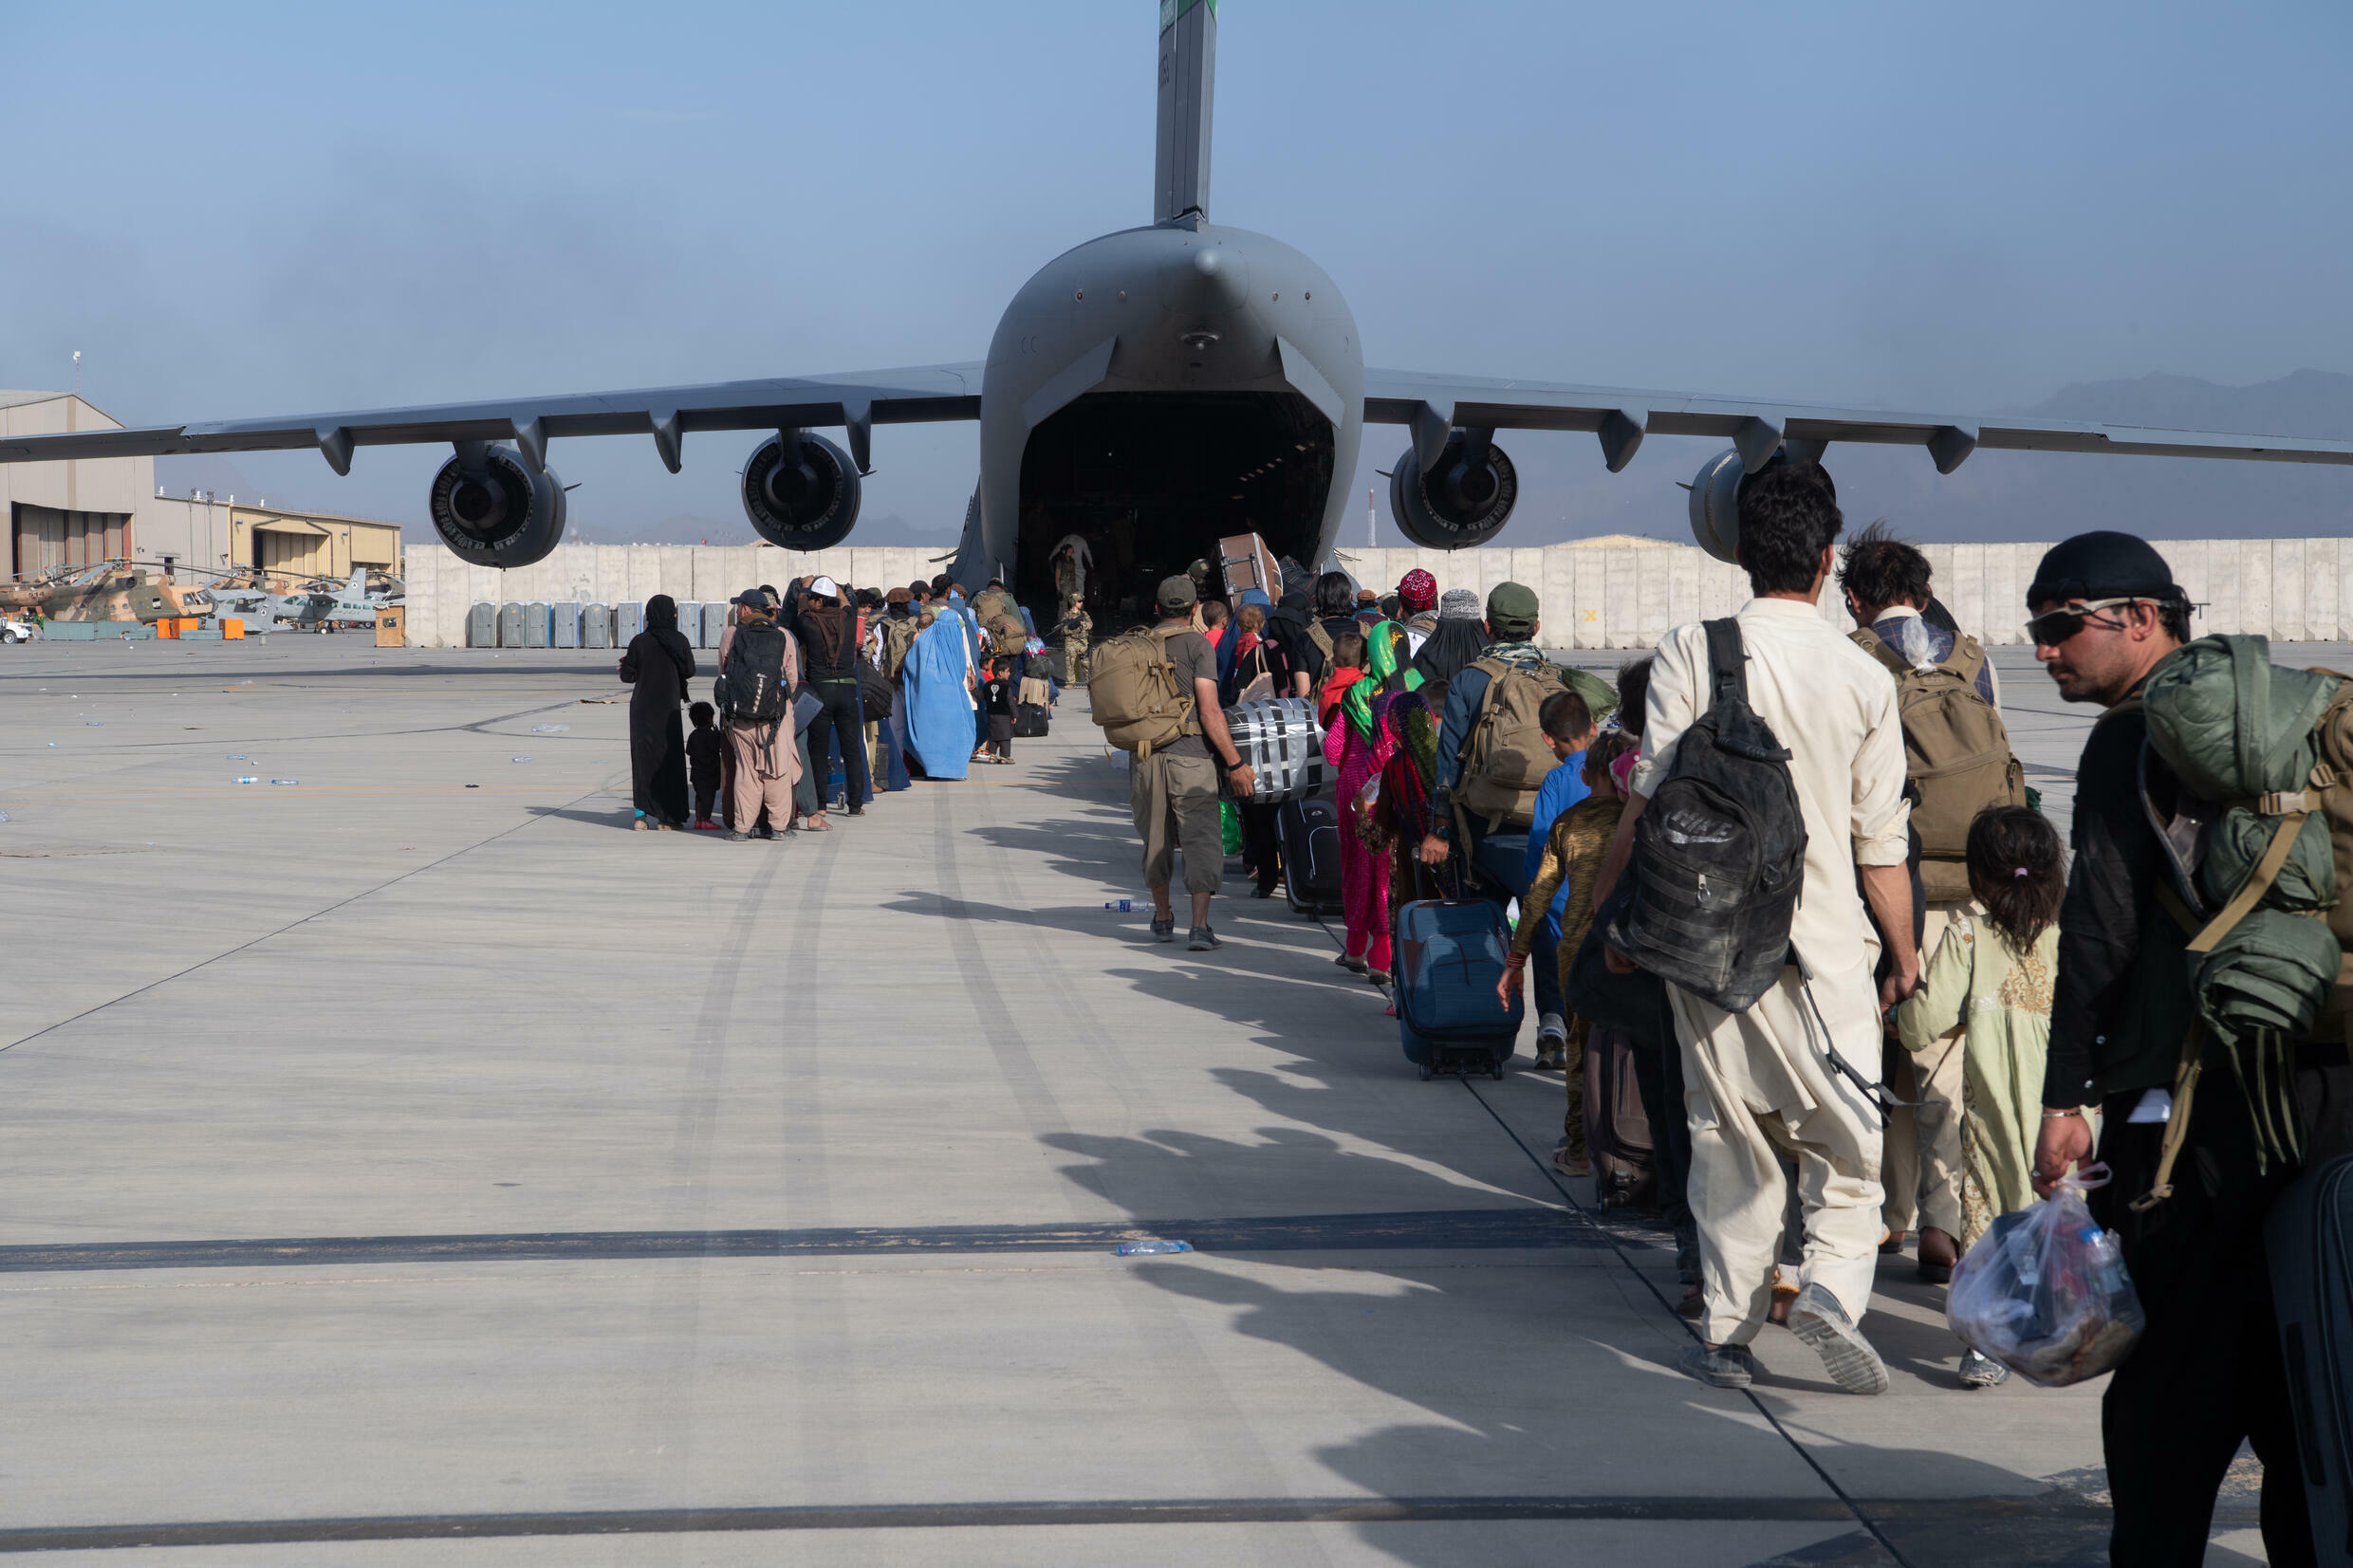 This handout photo courtesy ot the US Air Force shows passengers waiting to board a US air transport at Hamid Karzai International Airport (HKIA), Afghanistan, August 24, 2021